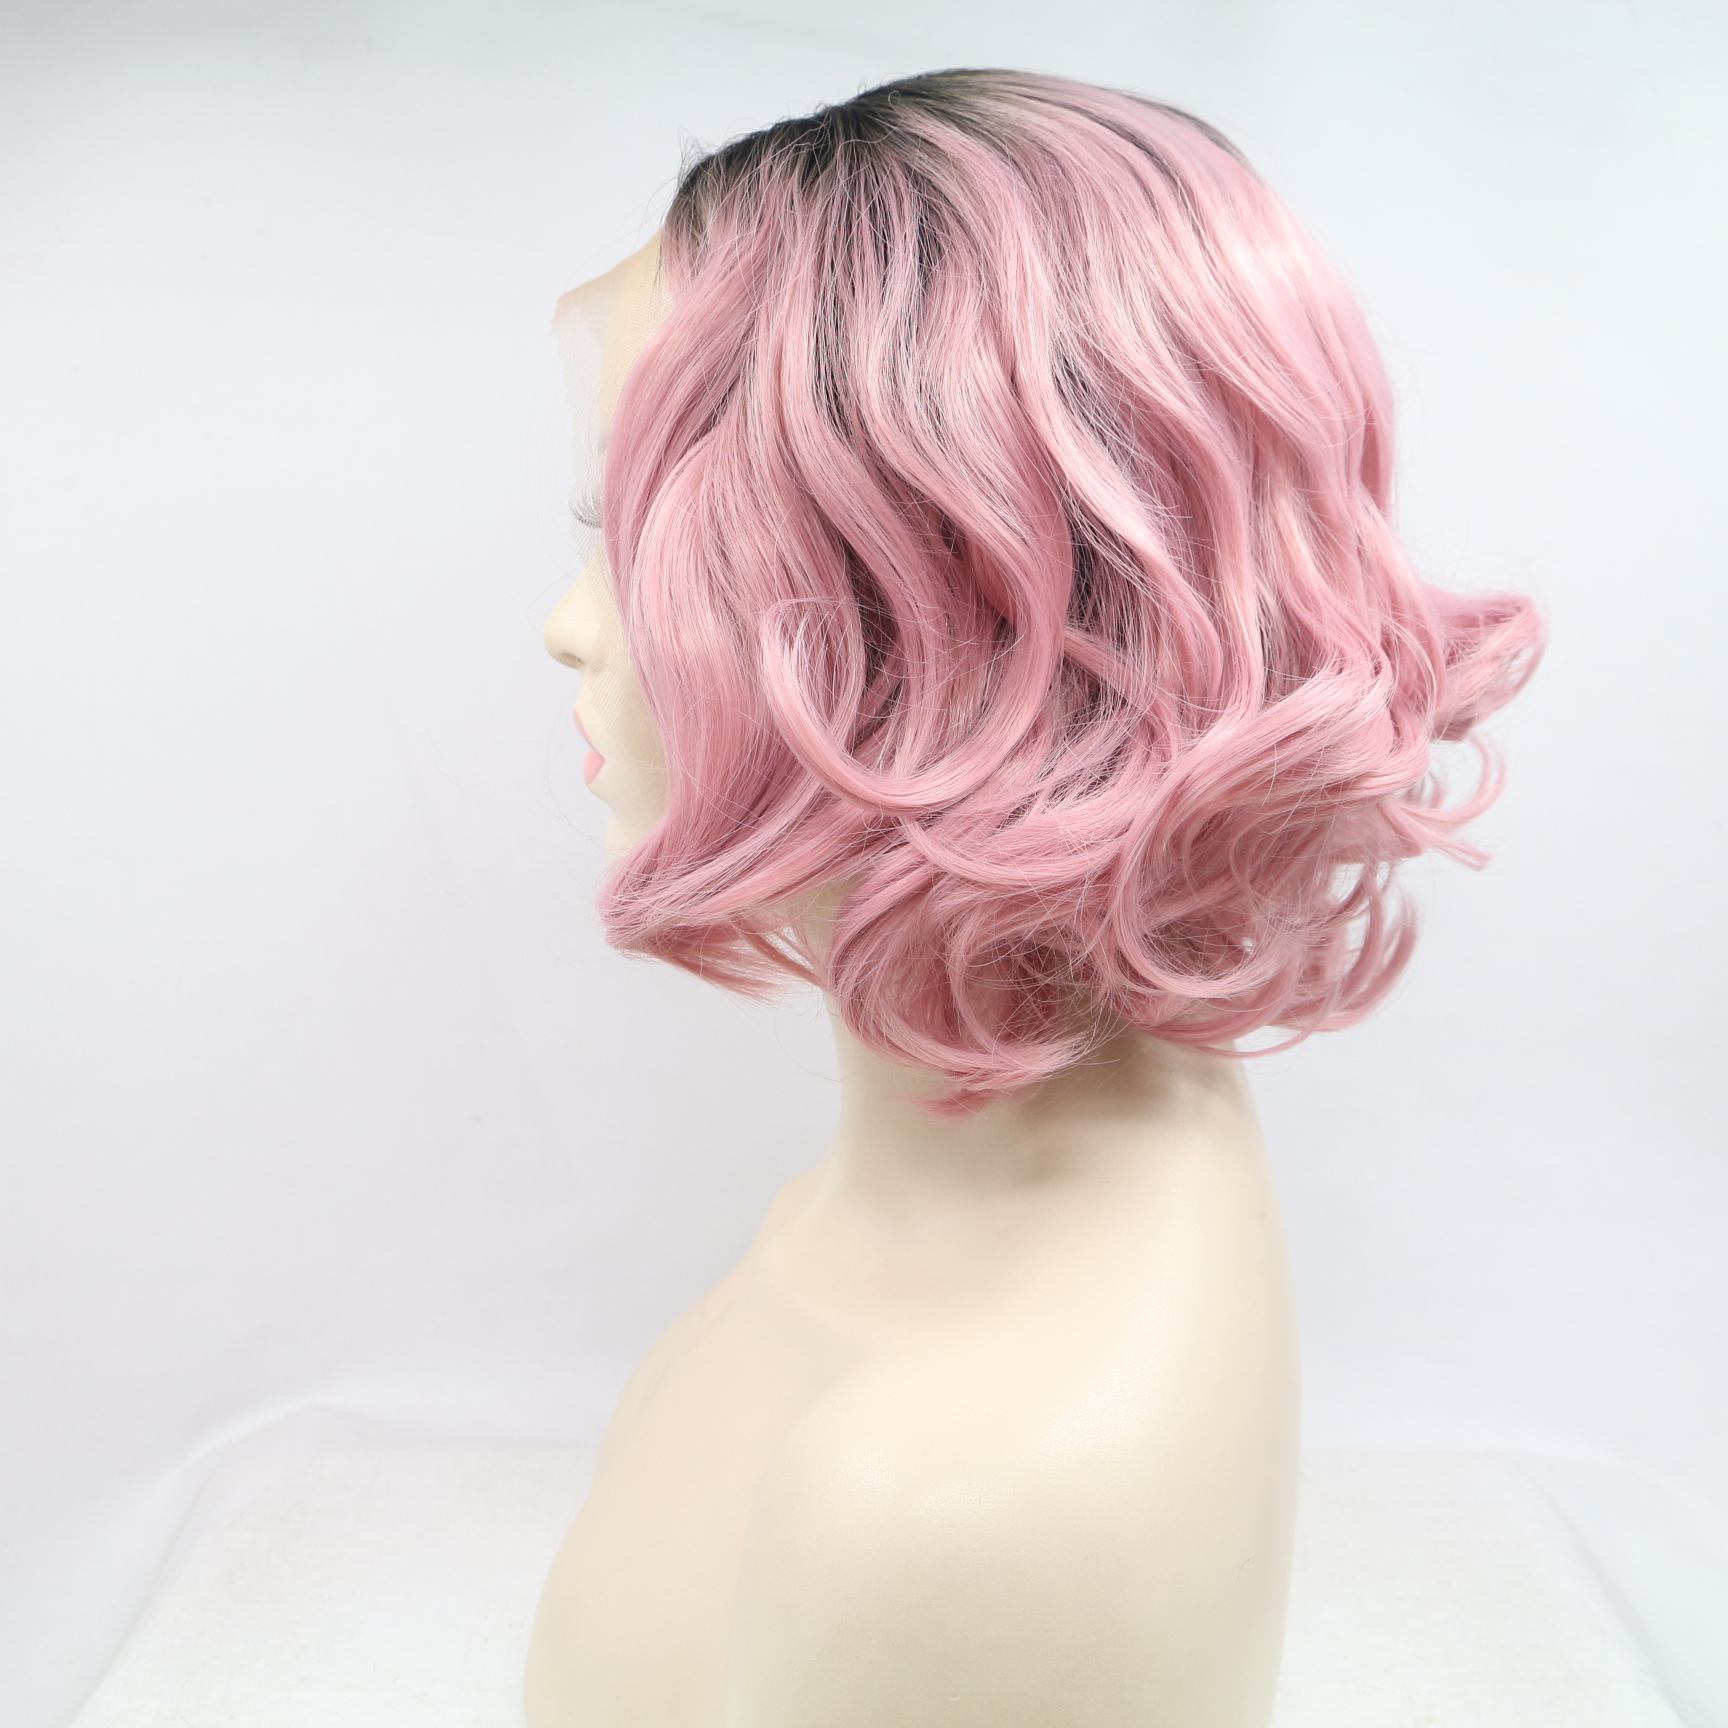 2018 Black Pink Ombre Short Wavy Synthetic Lace Front Wig 180% Density #1B/Pink Wig